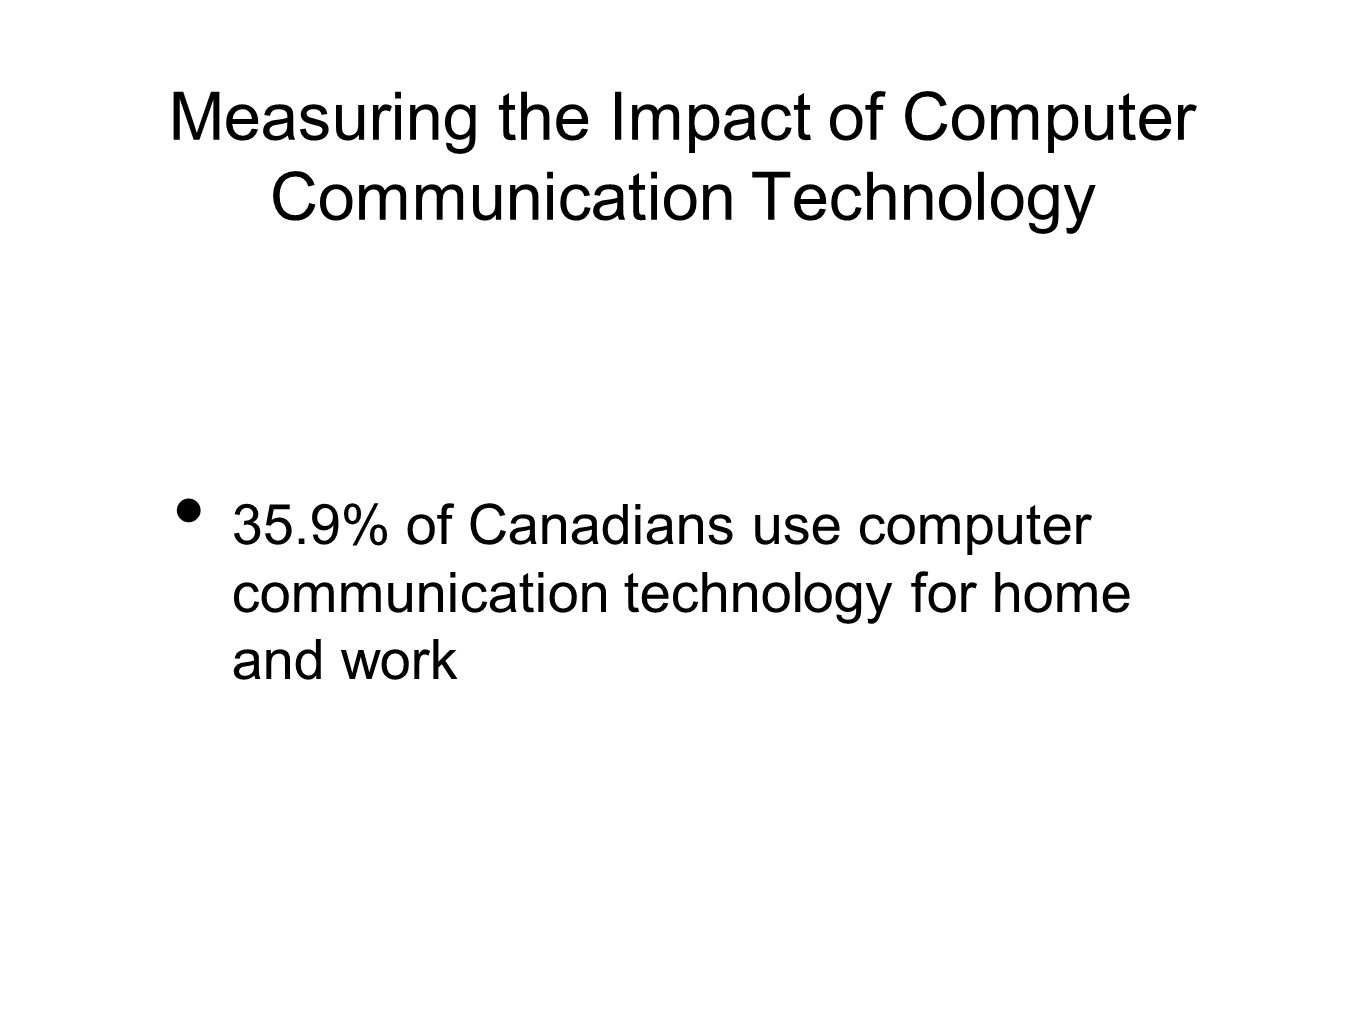 impact of technology communication Recent technological advancements have had a drastic impact on the way individuals communicate in this research, previous studies were analyzed, field observations were conducted, and an online survey was administered.